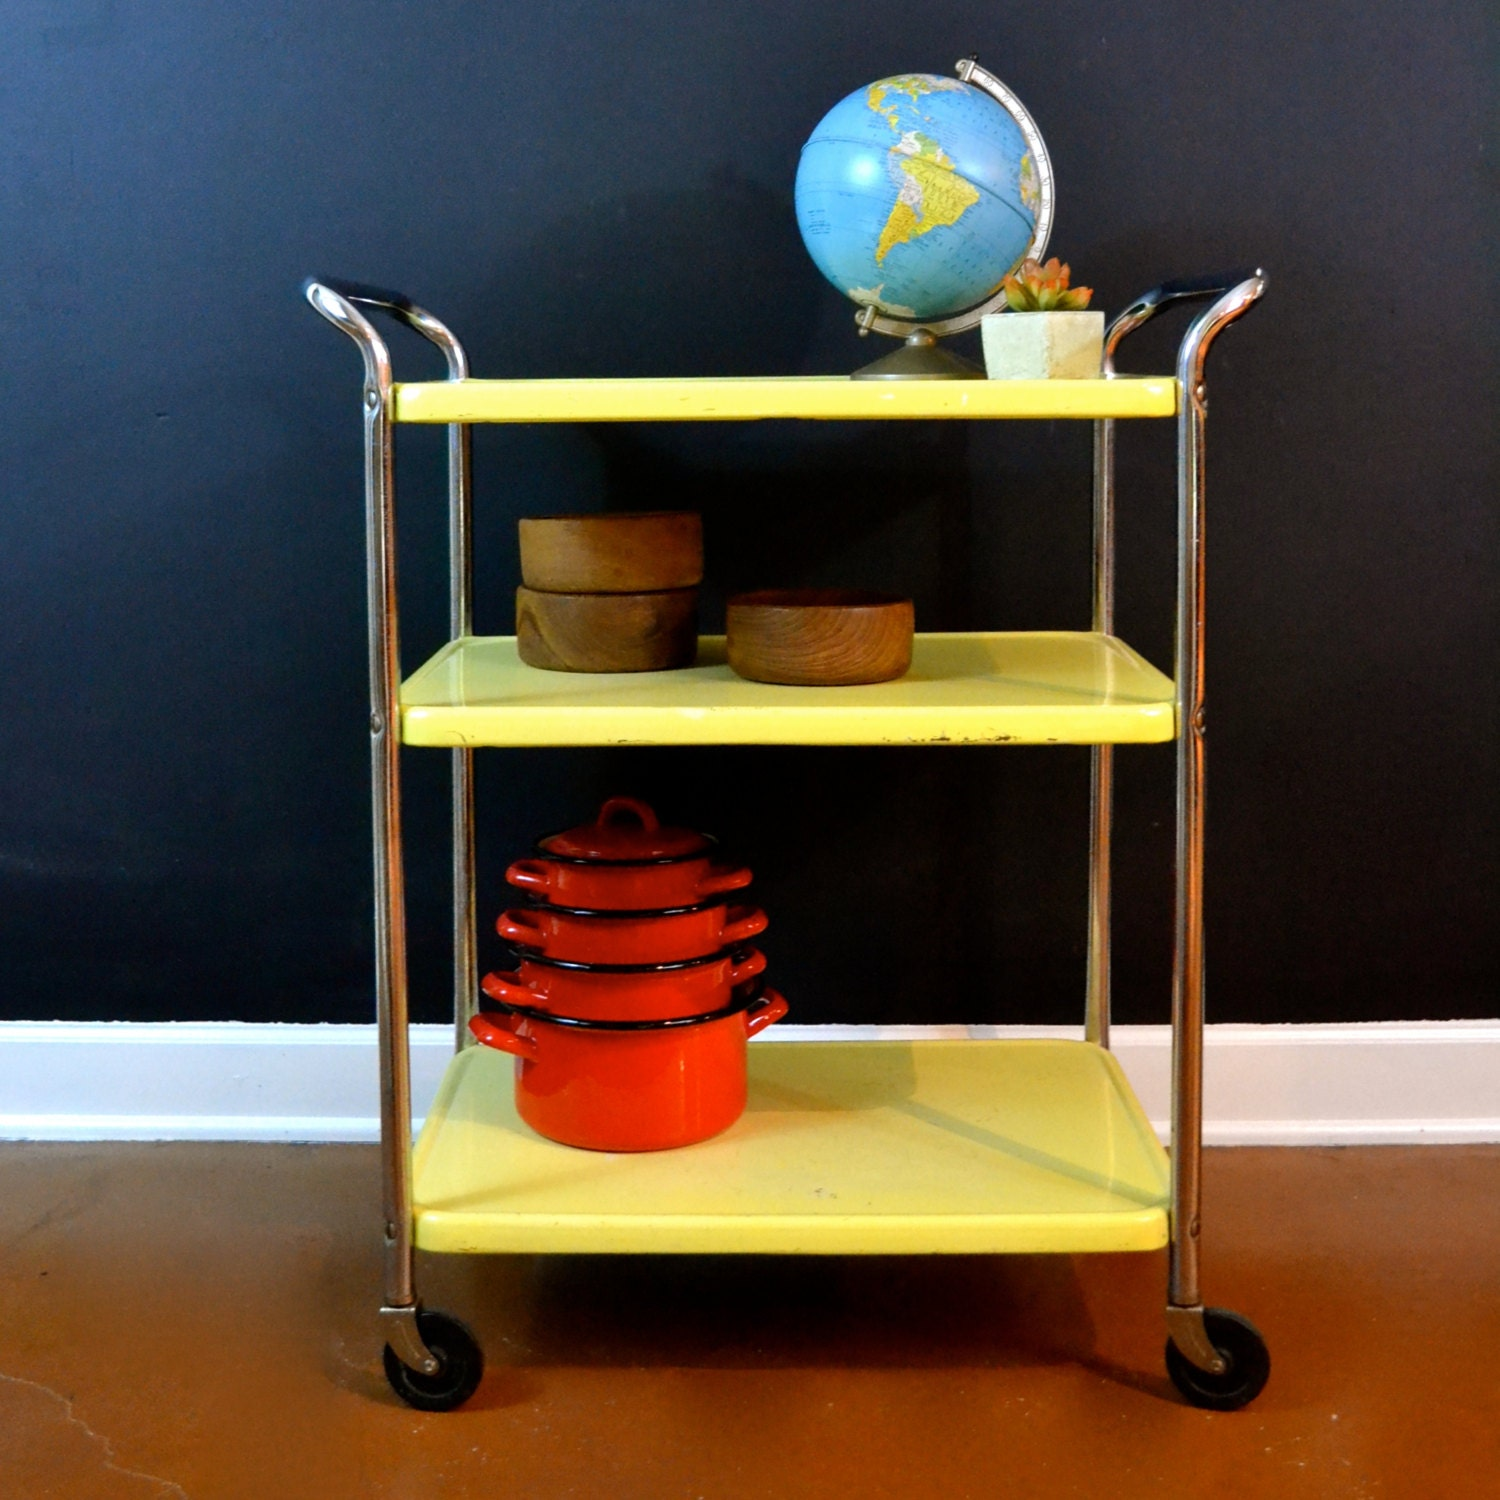 Vintage Metal Cart Serving Cart Kitchen Cart Red: Vintage Yellow Enamel Cart Bar Cart 3 Tier Cosco Cart Mid